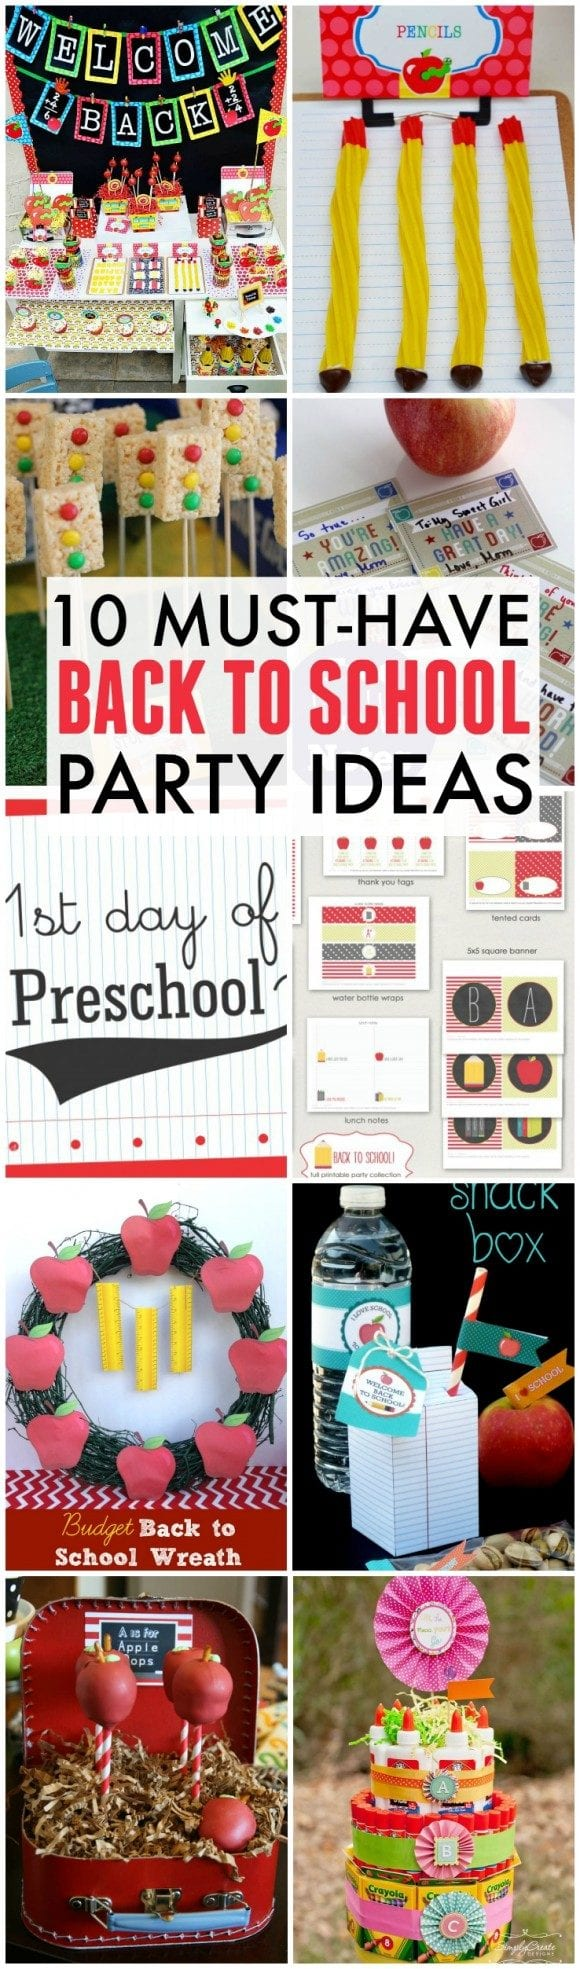 10 Must-Have Back To School Party Ideas | CatchMyParty.com